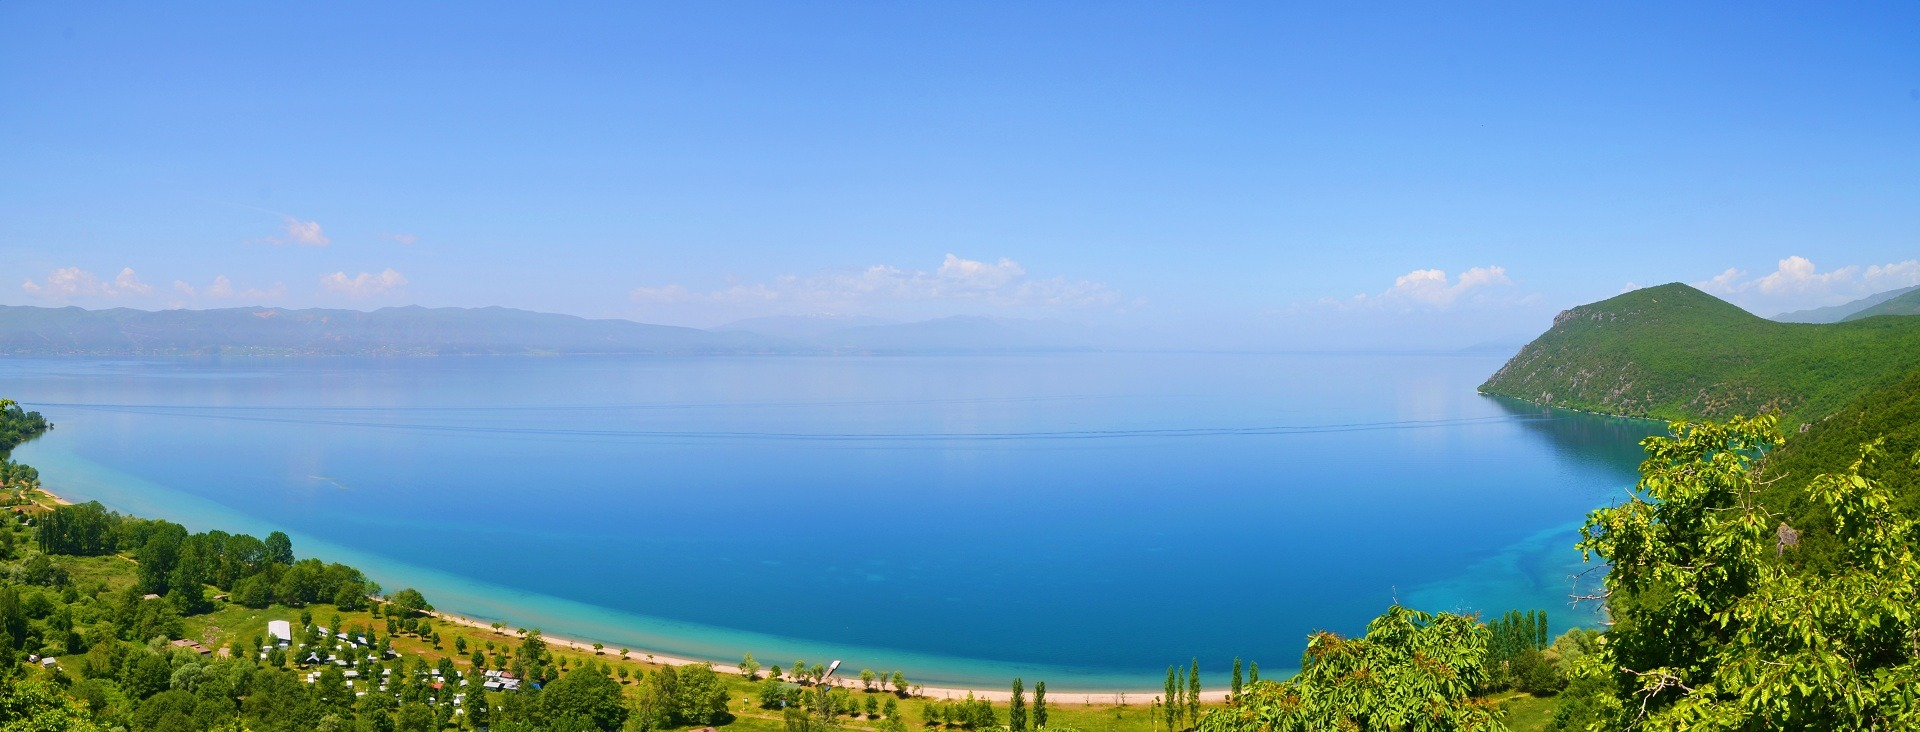 beautiful pictures of macedonia